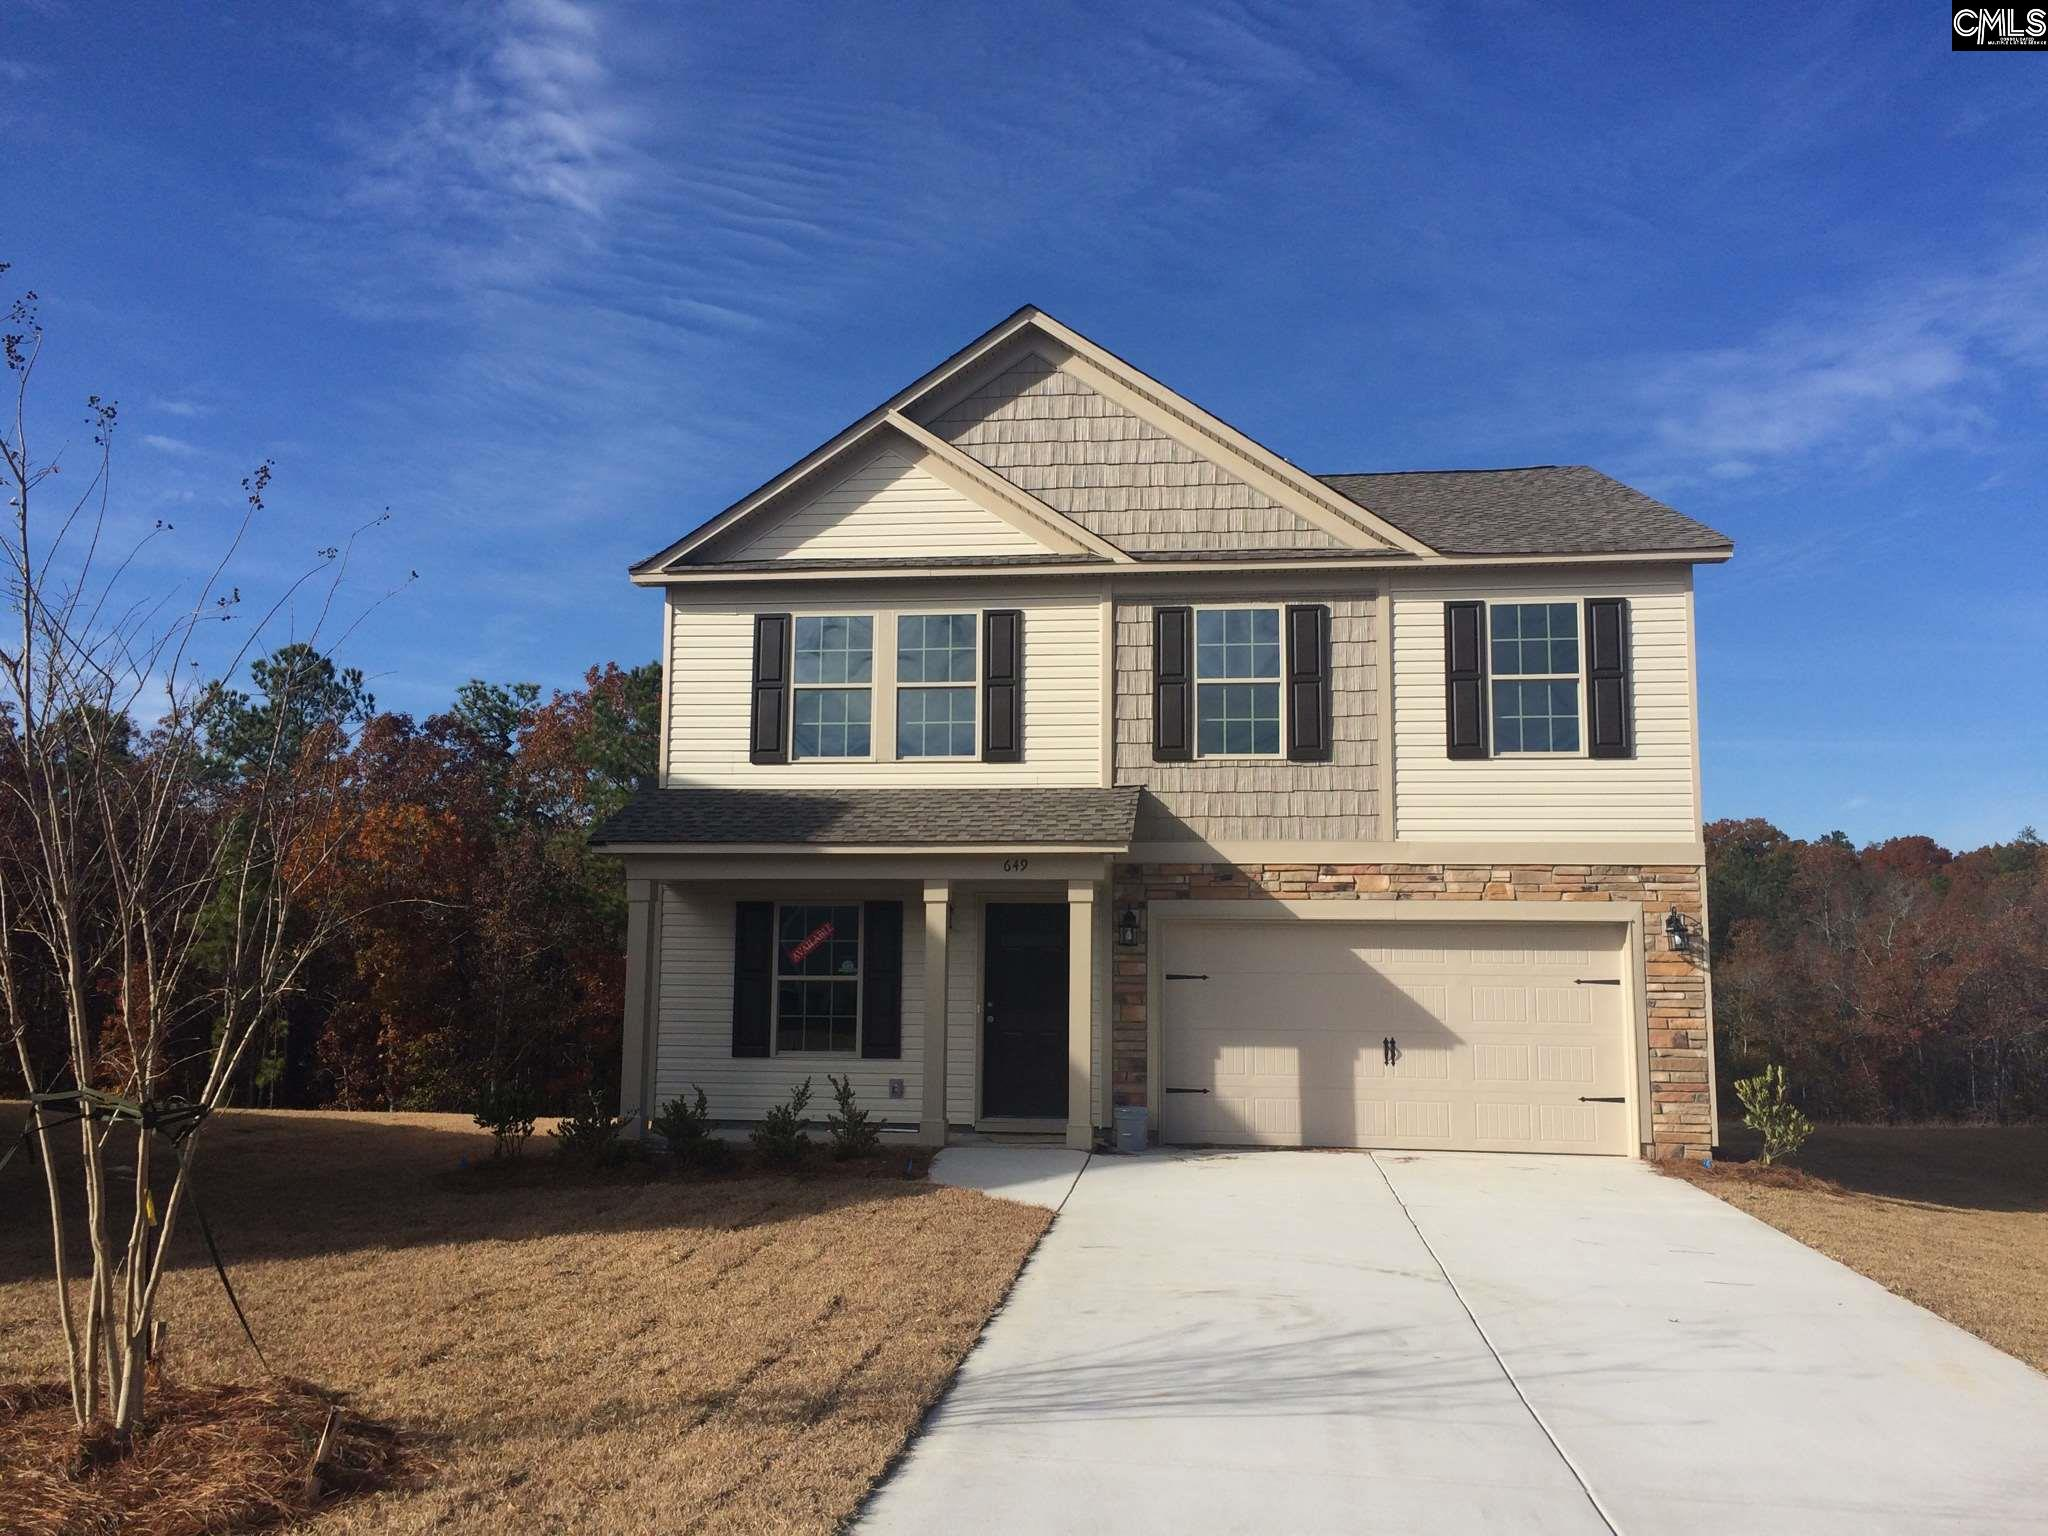 649 Teaberry (lot 112) Columbia, SC 29229